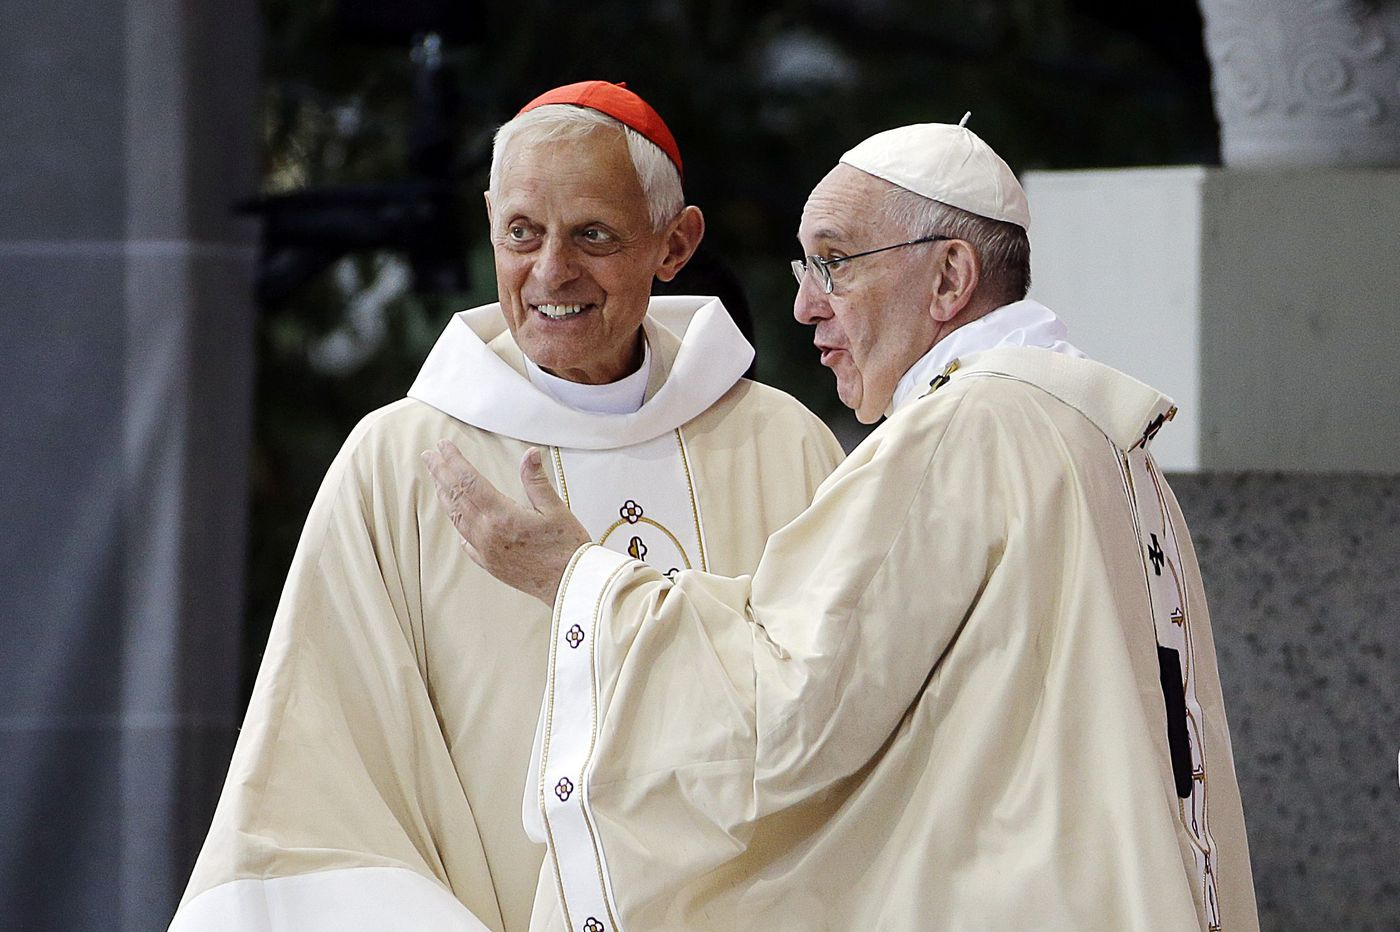 D.C. Cardinal Wuerl: Pray for the victims of clergy sex abuse